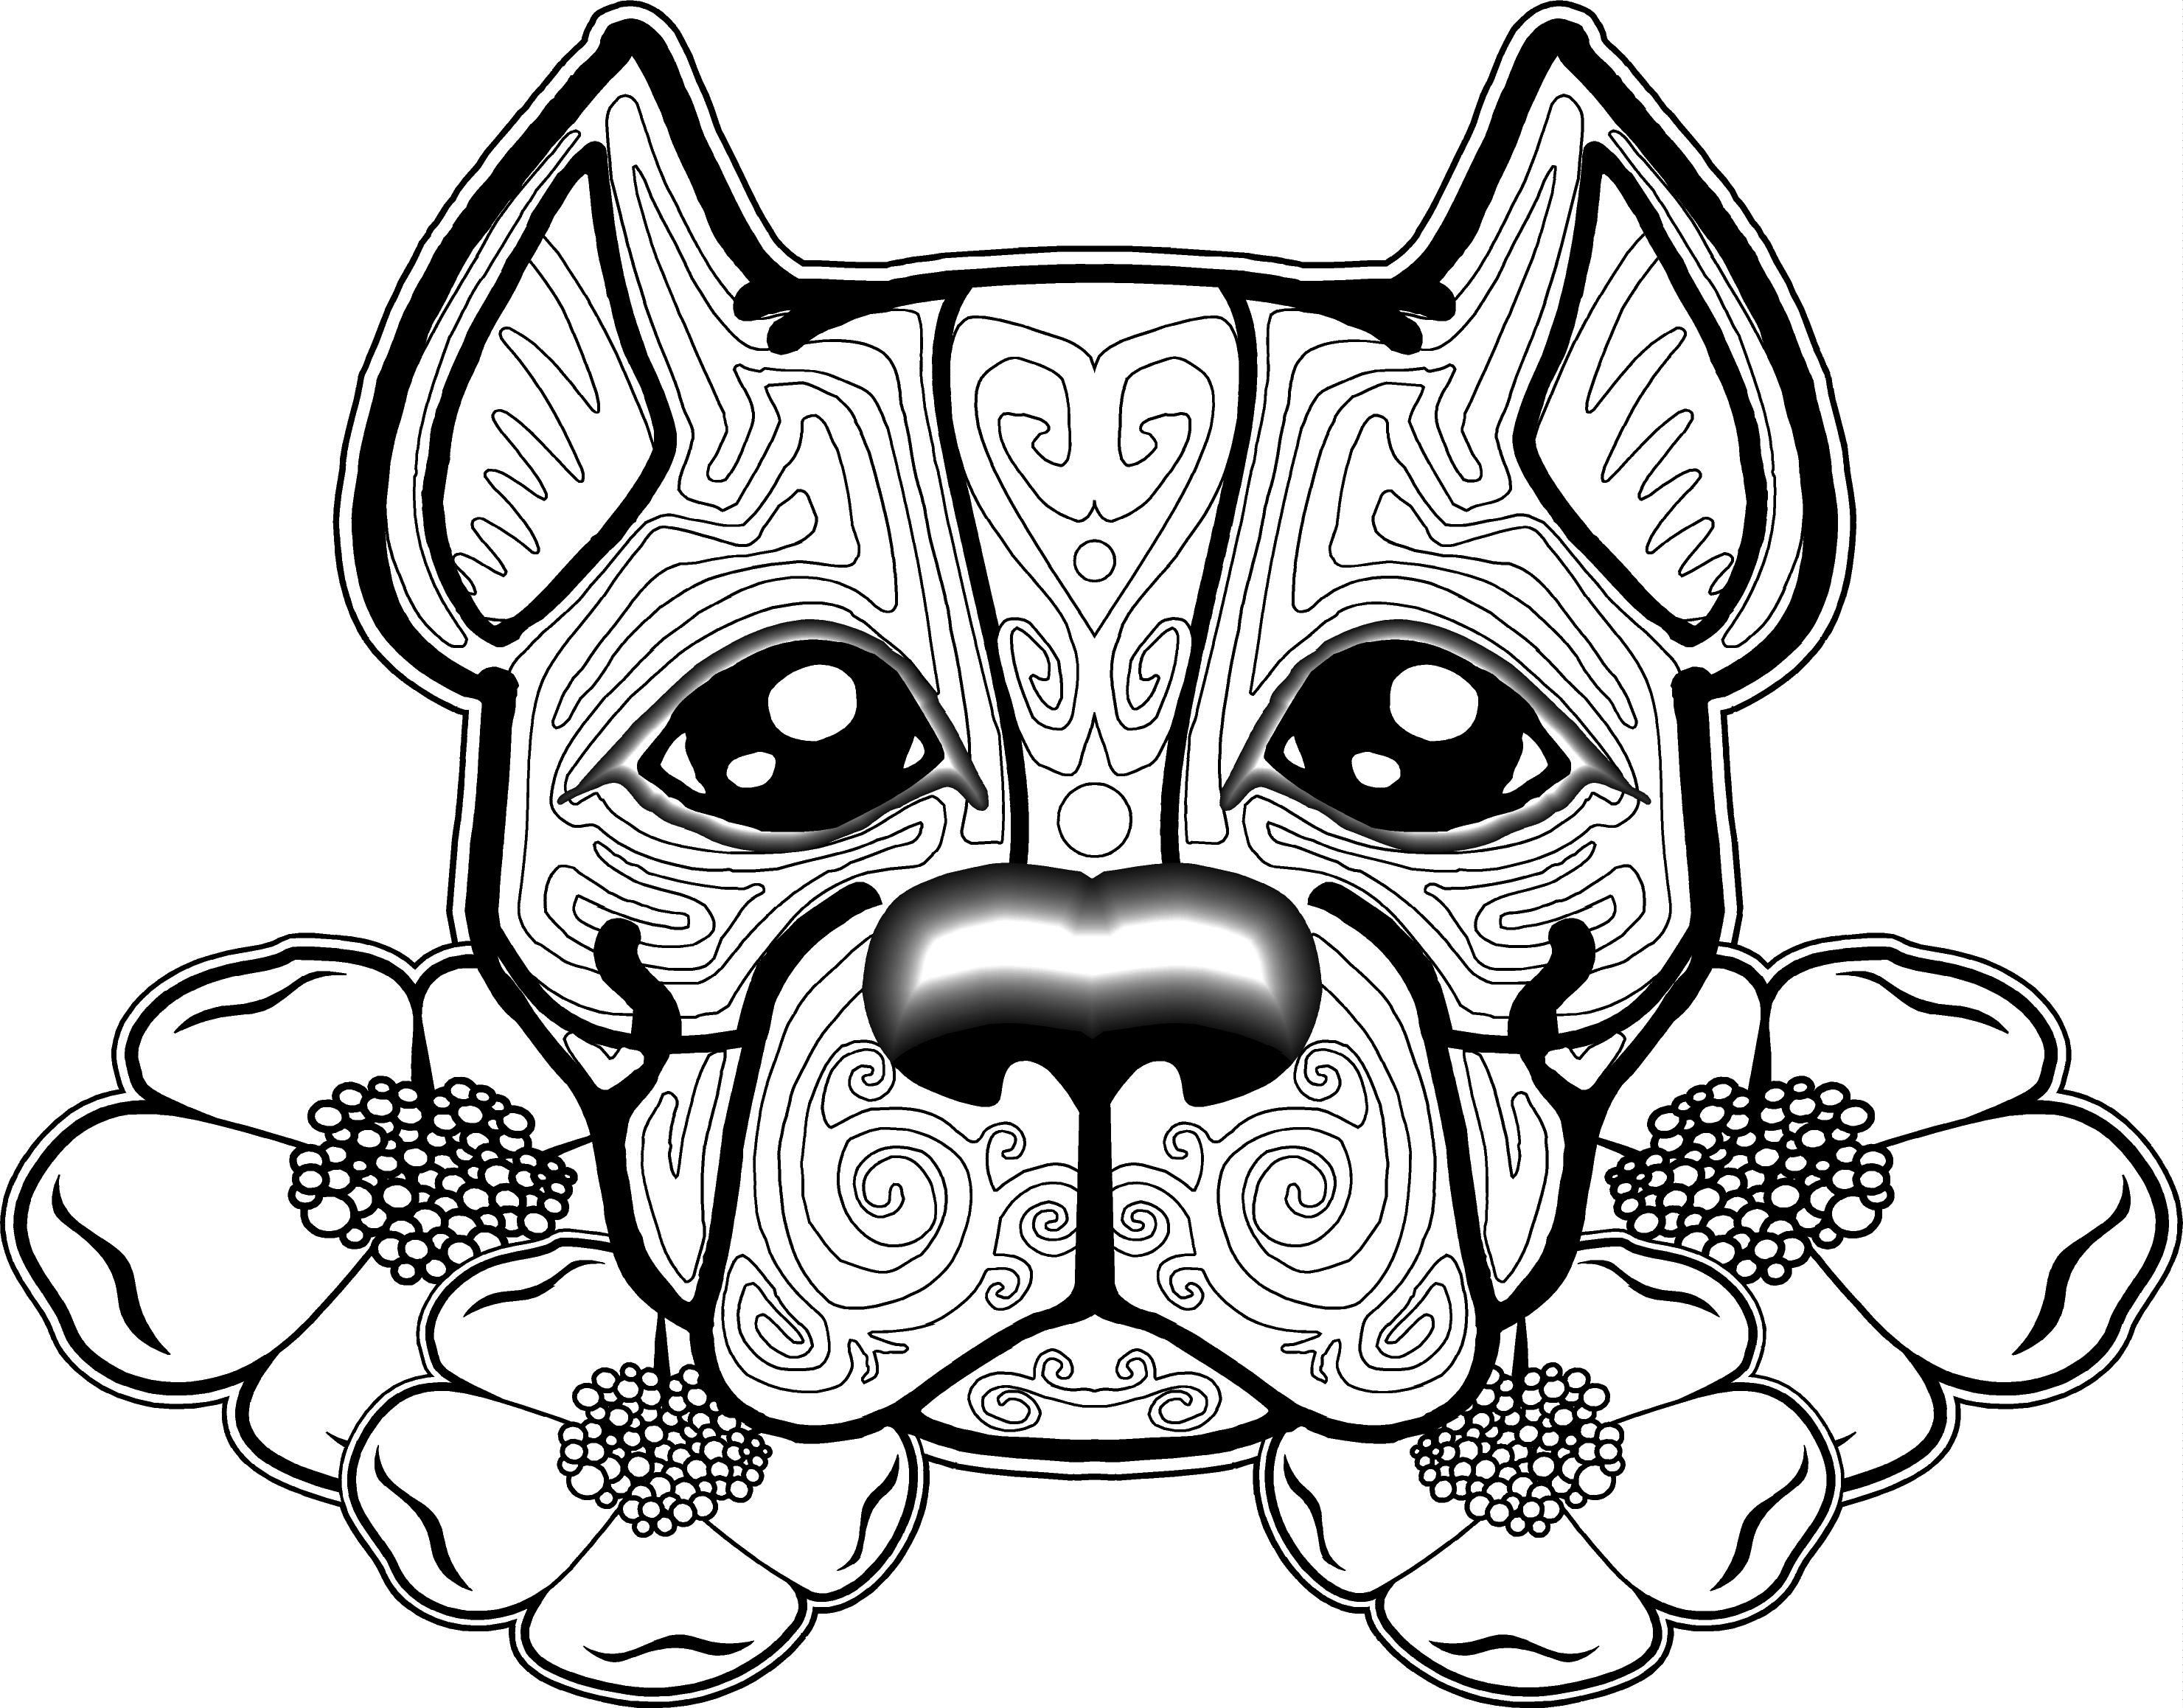 Free Dog Coloring Pages For Adults | Free Printable Coloring Pages - Colouring Pages Dogs Free Printable